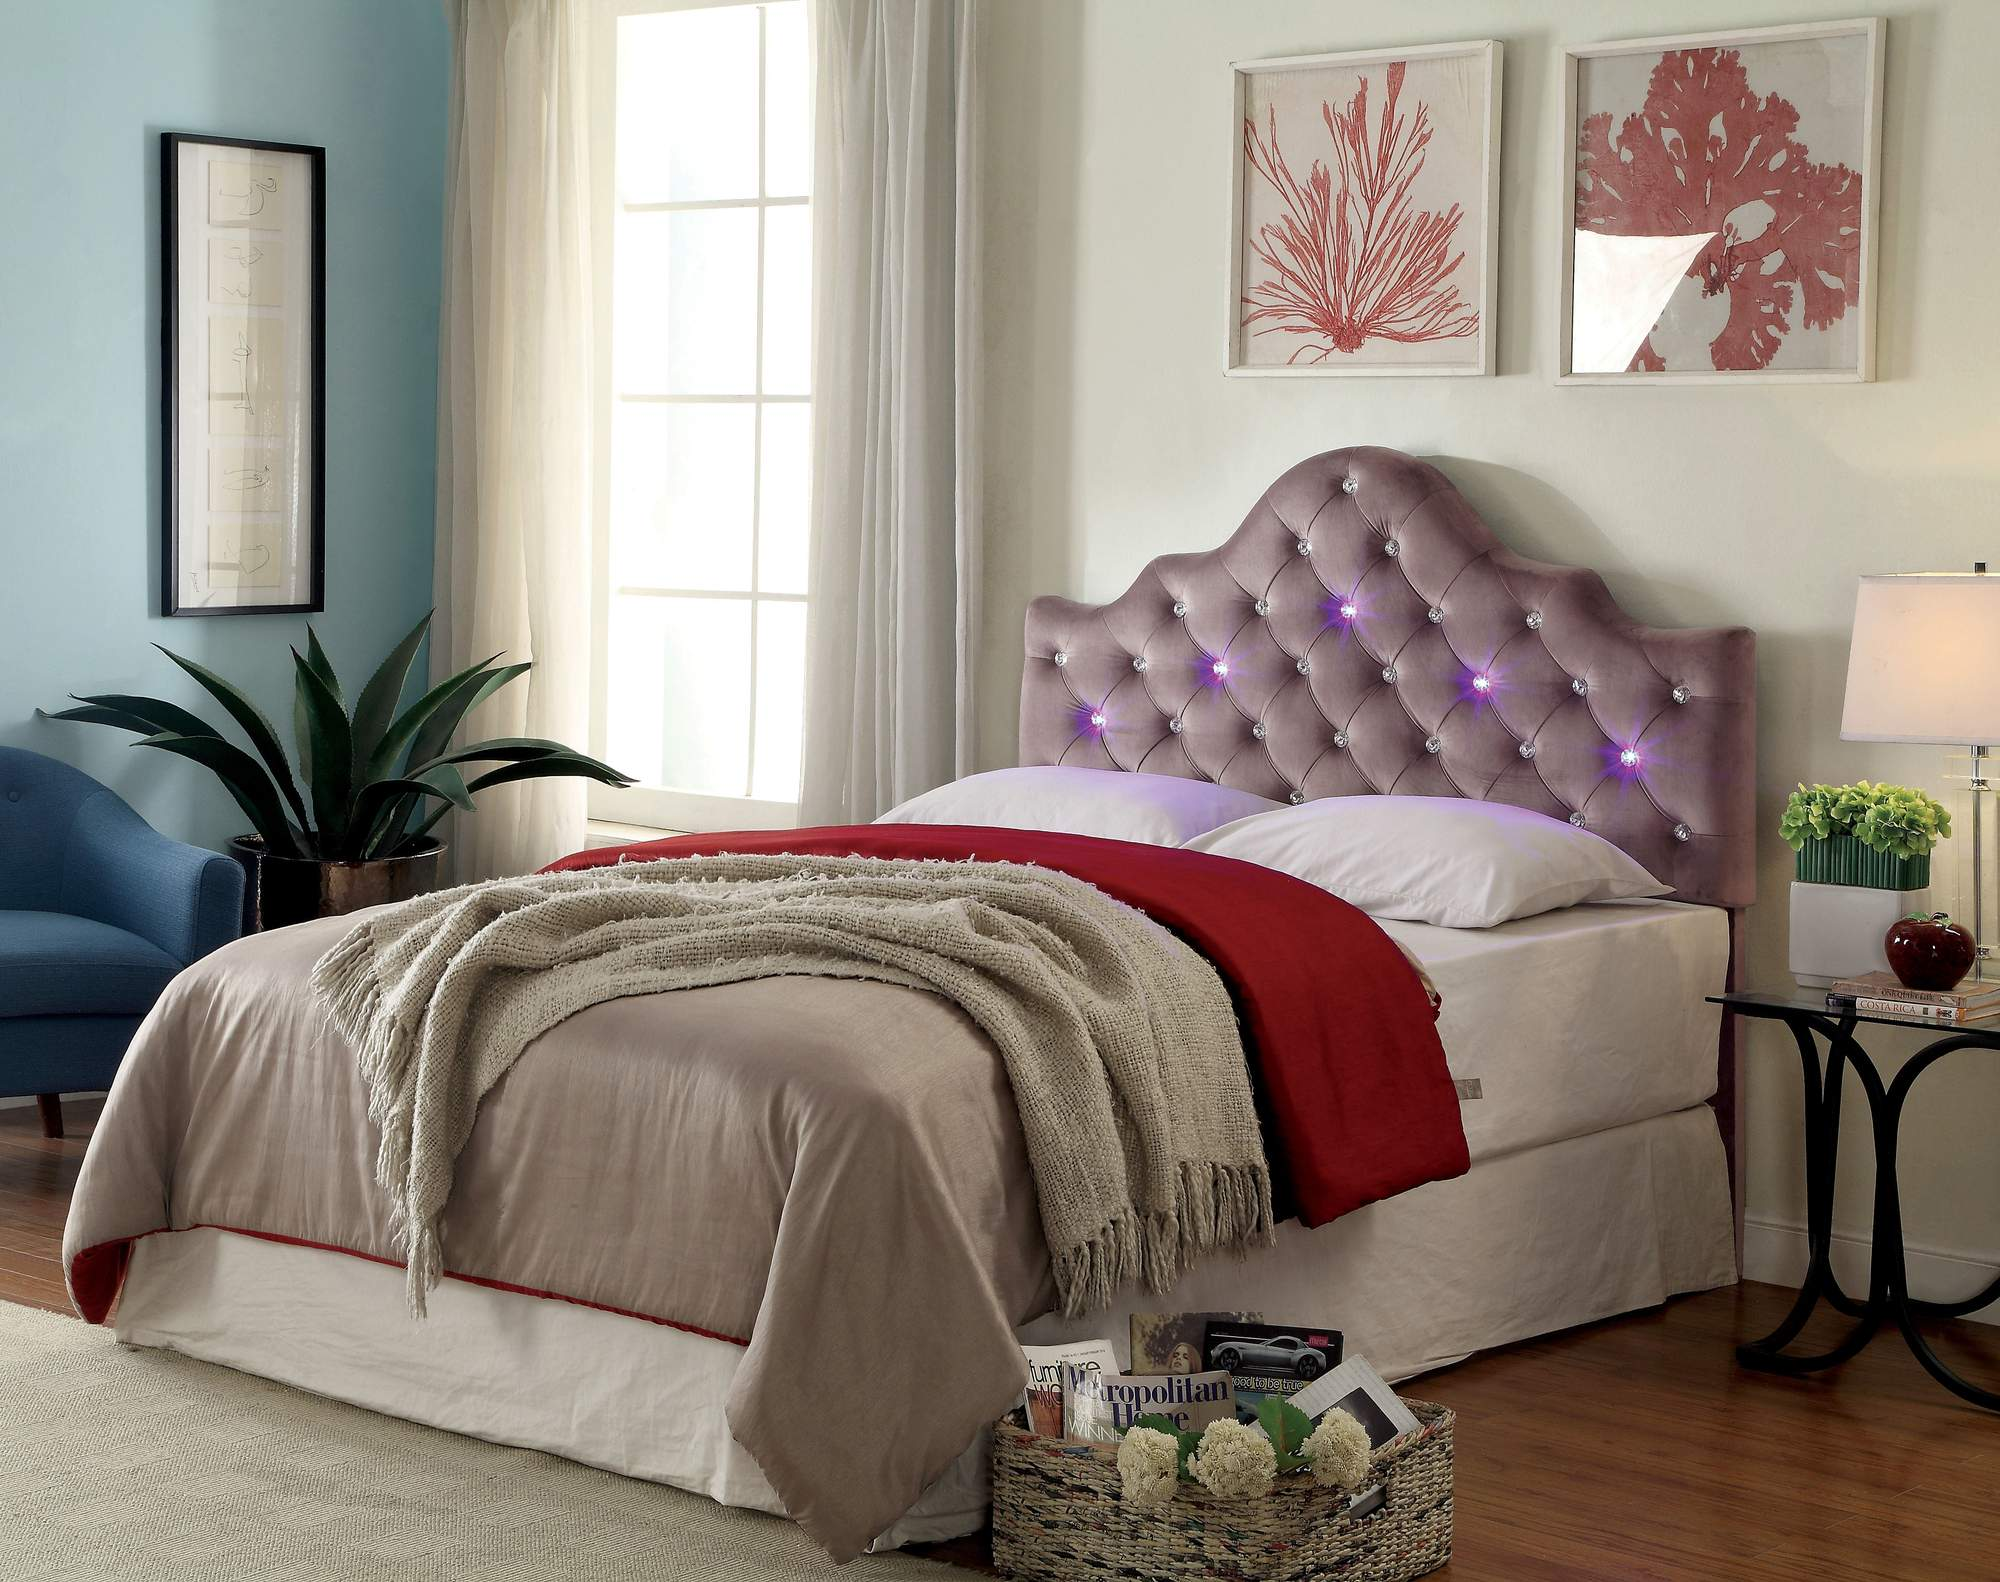 Furniture Of America Lulu Contemporary King Headboard With LED, Multiple  Colors   Walmart.com